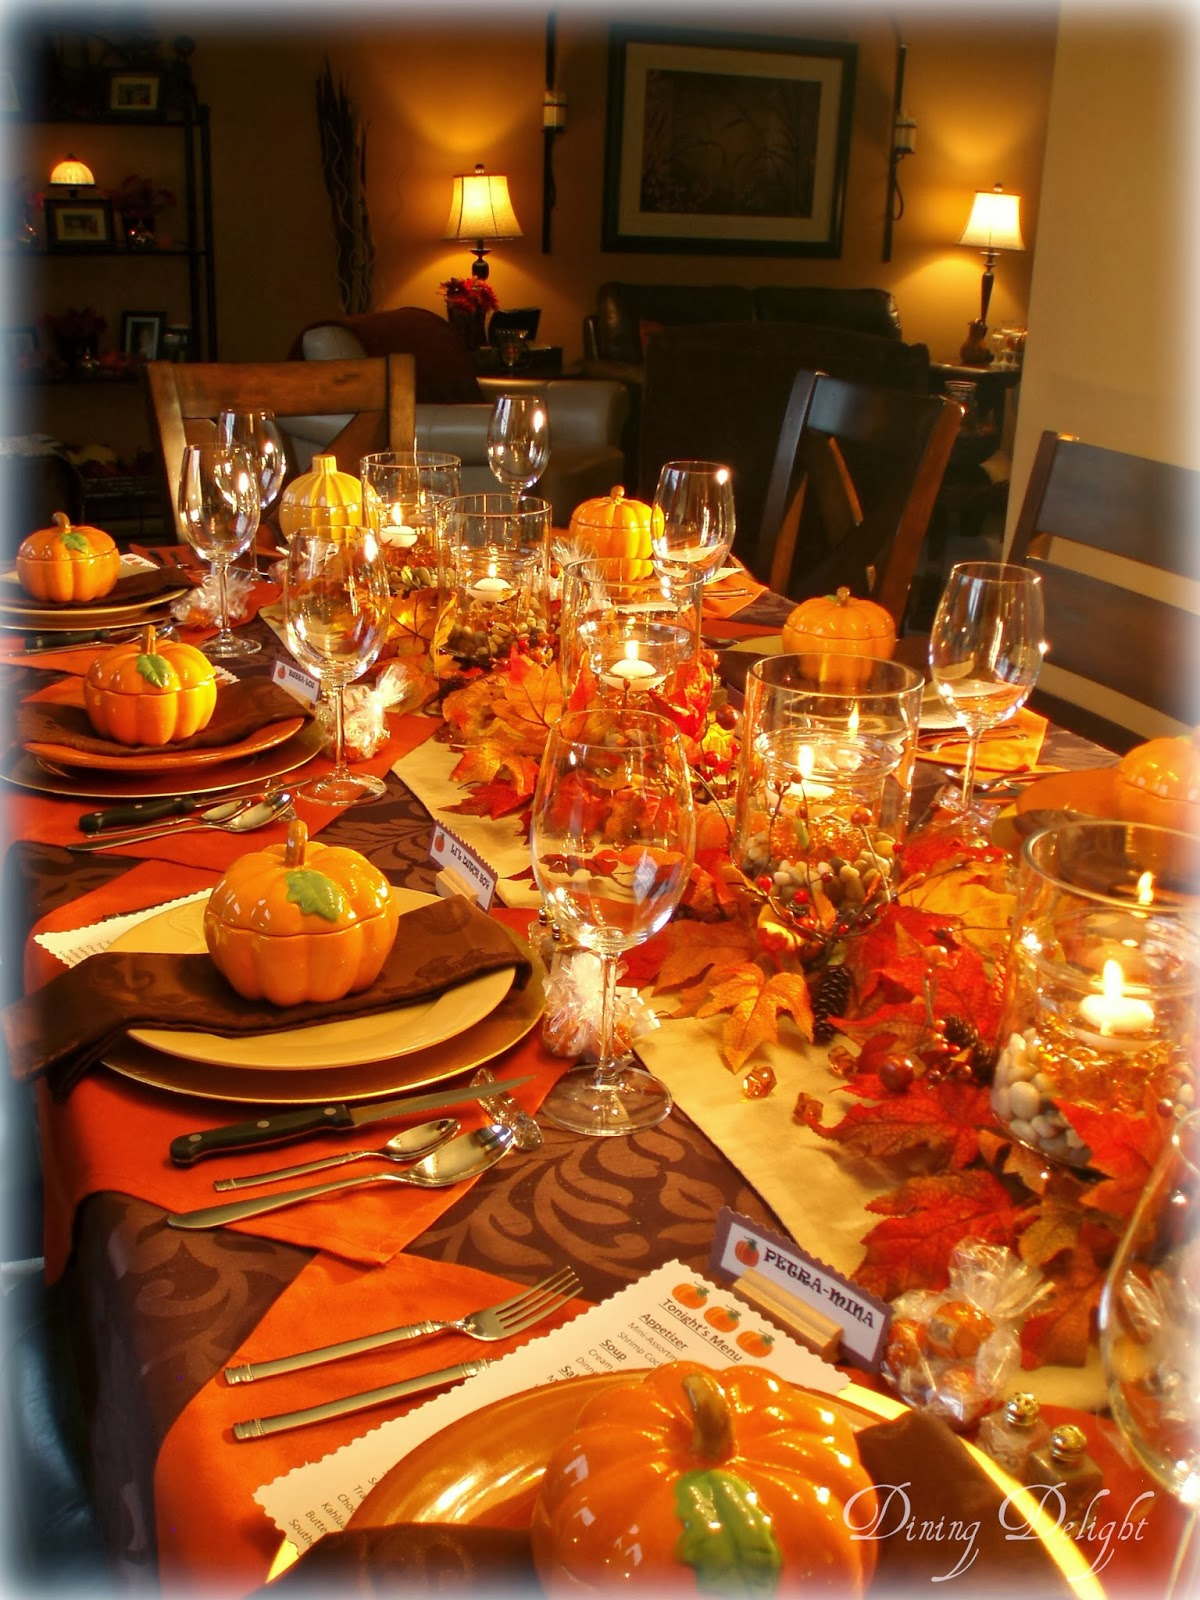 For a show-stopping table setting that honors tradition, fill the center of your table with a colorful display of pumpkins, gourds, nuts, fruits, veggies and seasonal blooms. Carry the bountiful theme to each place setting with an artichoke place card holder. Get more tips for setting a harvest-inspired table.